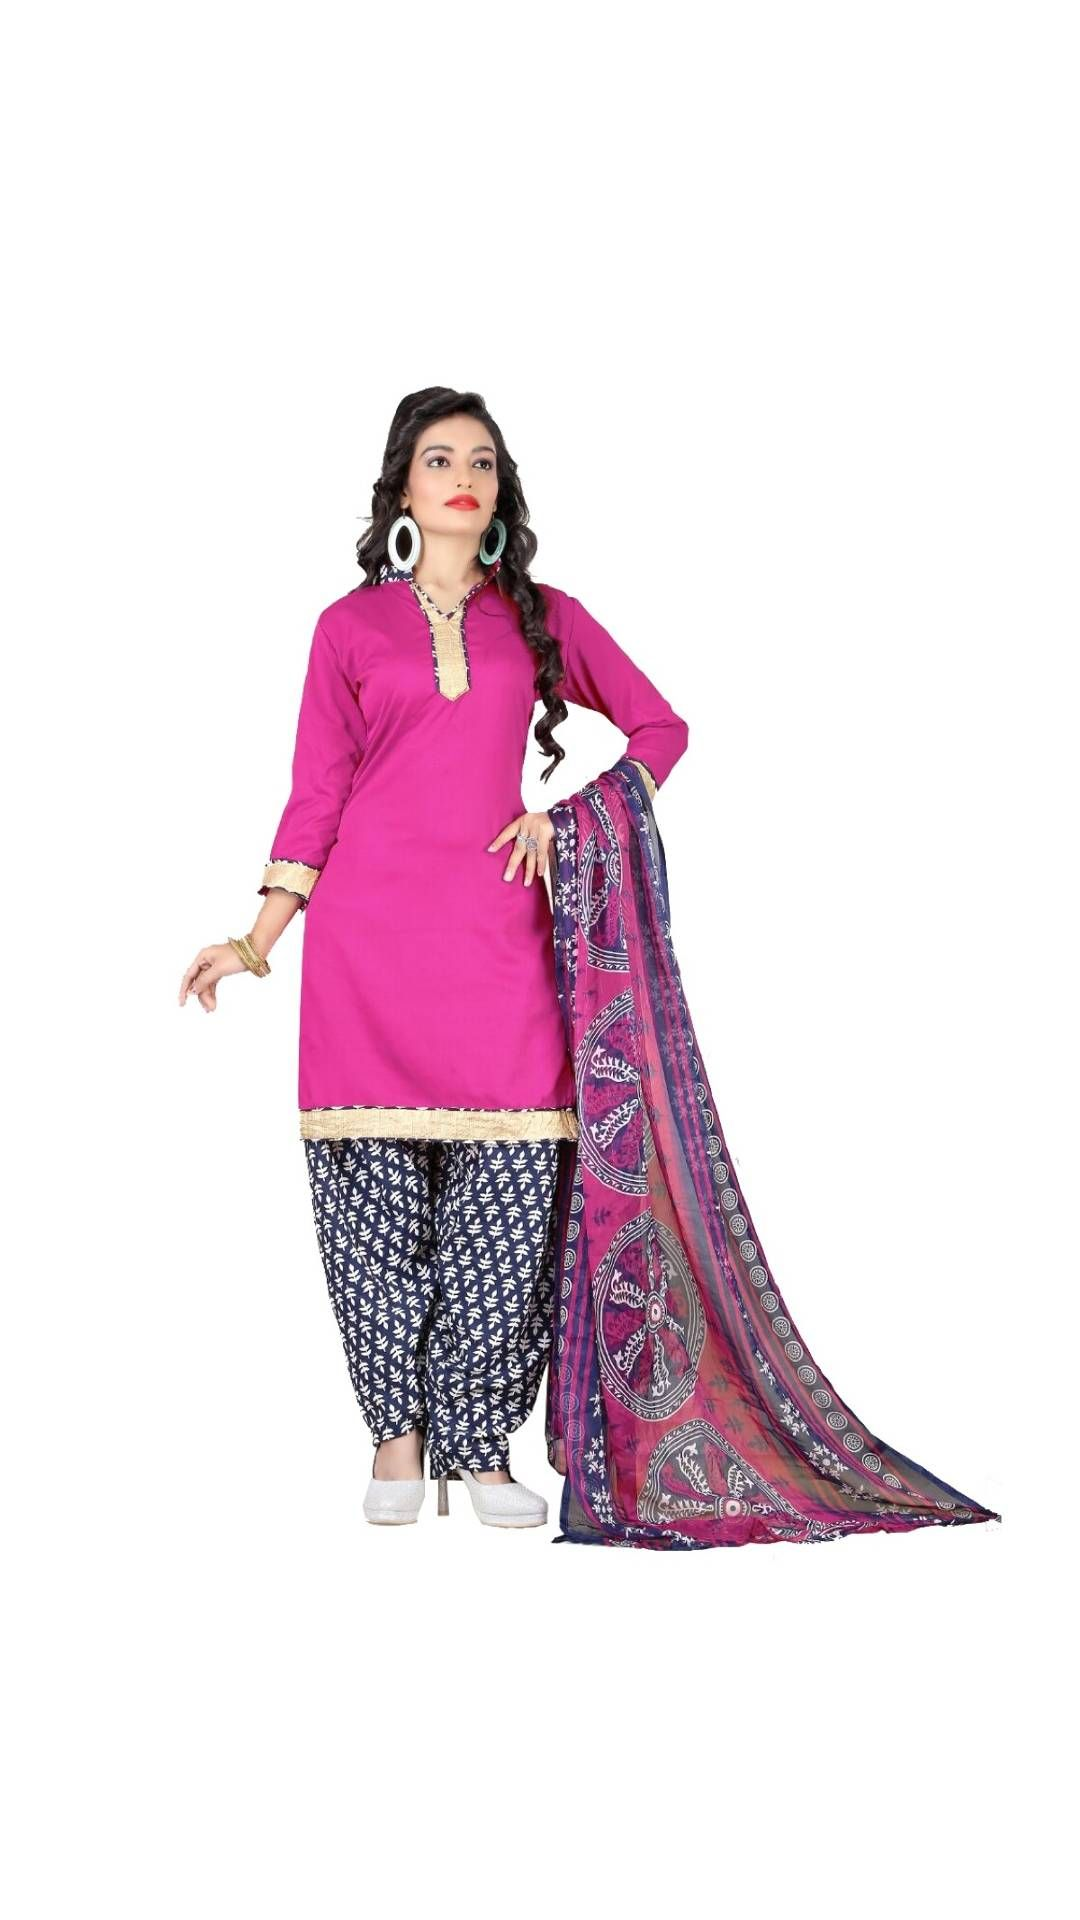 5bf0b6474d Paytm.com - Buy Sahari Designs Women's Pink Cotton Dress Material -  Unstitched online at best prices in India on Paytm.com